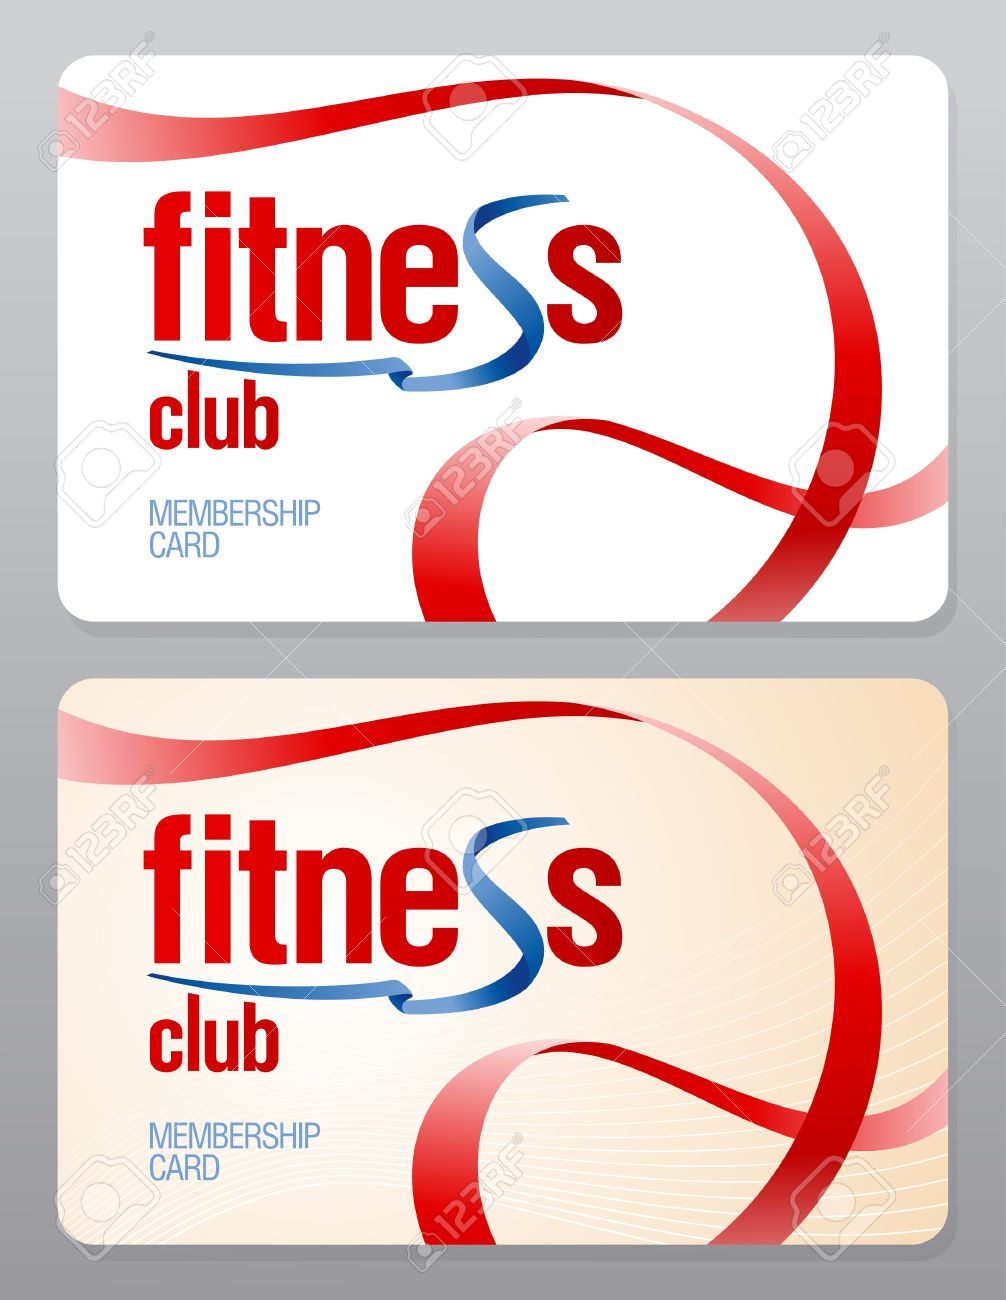 Fitness Club Membership Card Design Template Royalty Free